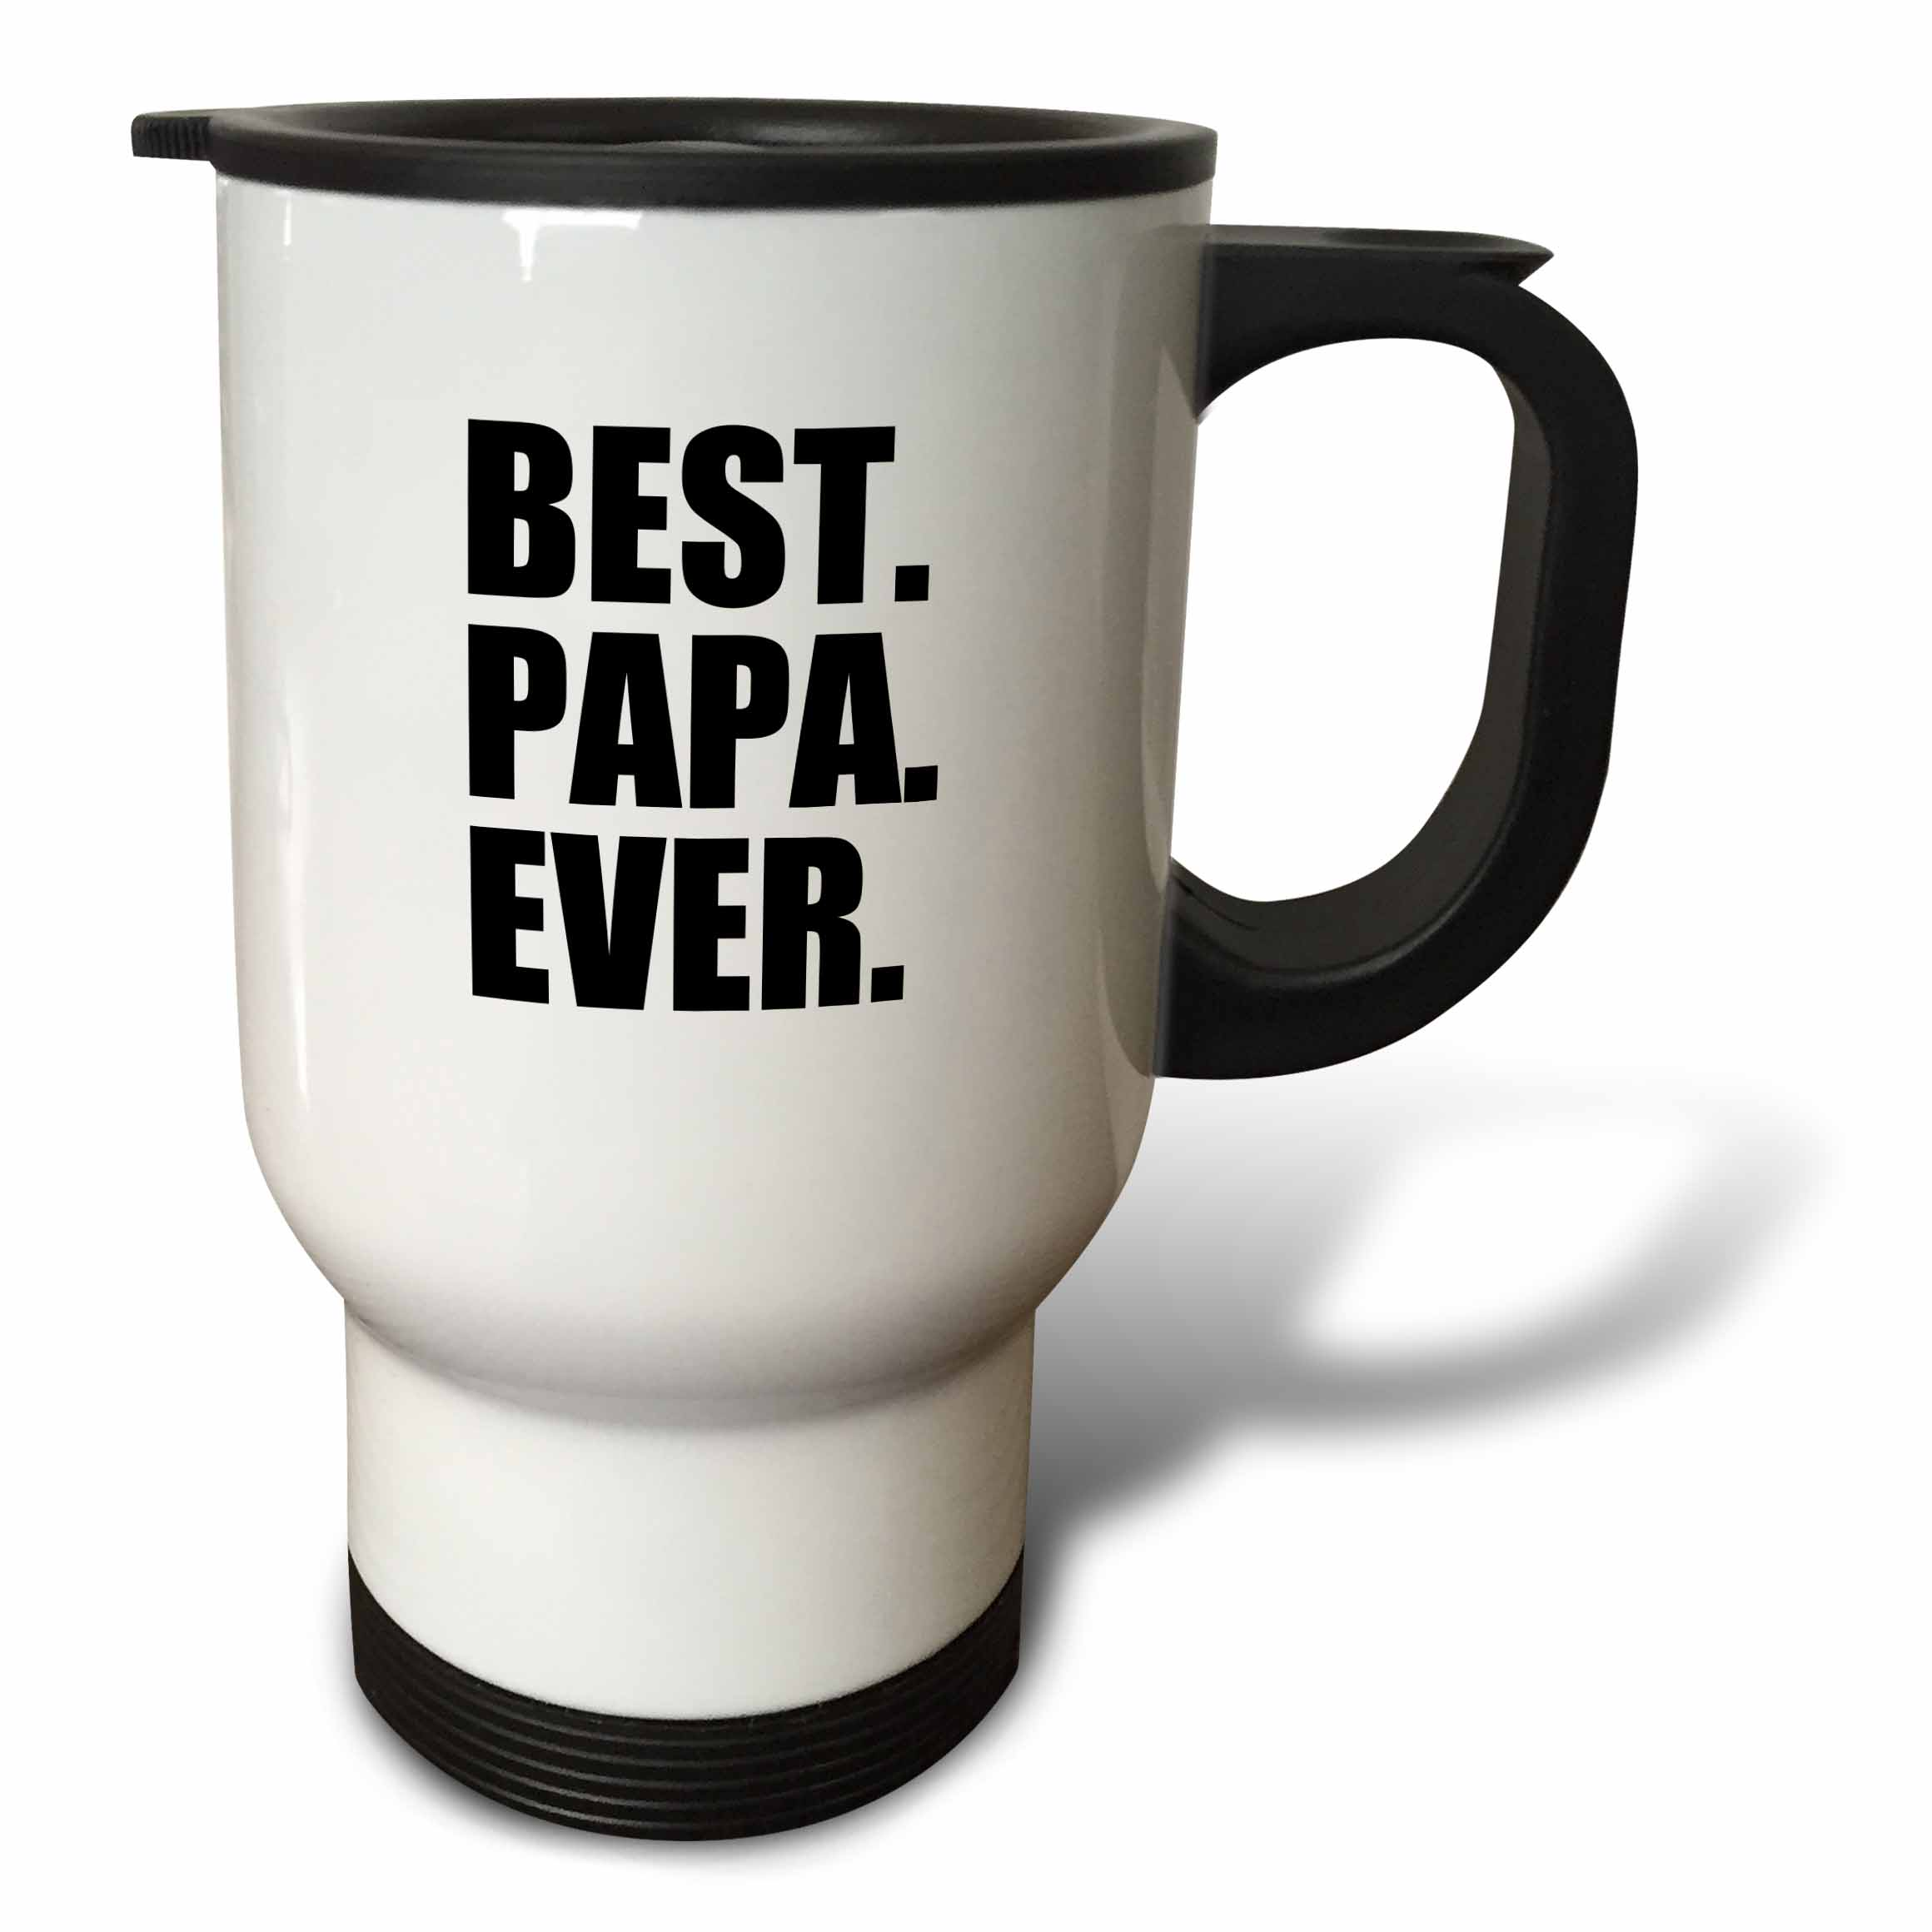 3dRose Best Papa Ever - Gifts for dads, Father nicknames, Fathers Day - black text, Travel Mug, 14oz, Stainless Steel